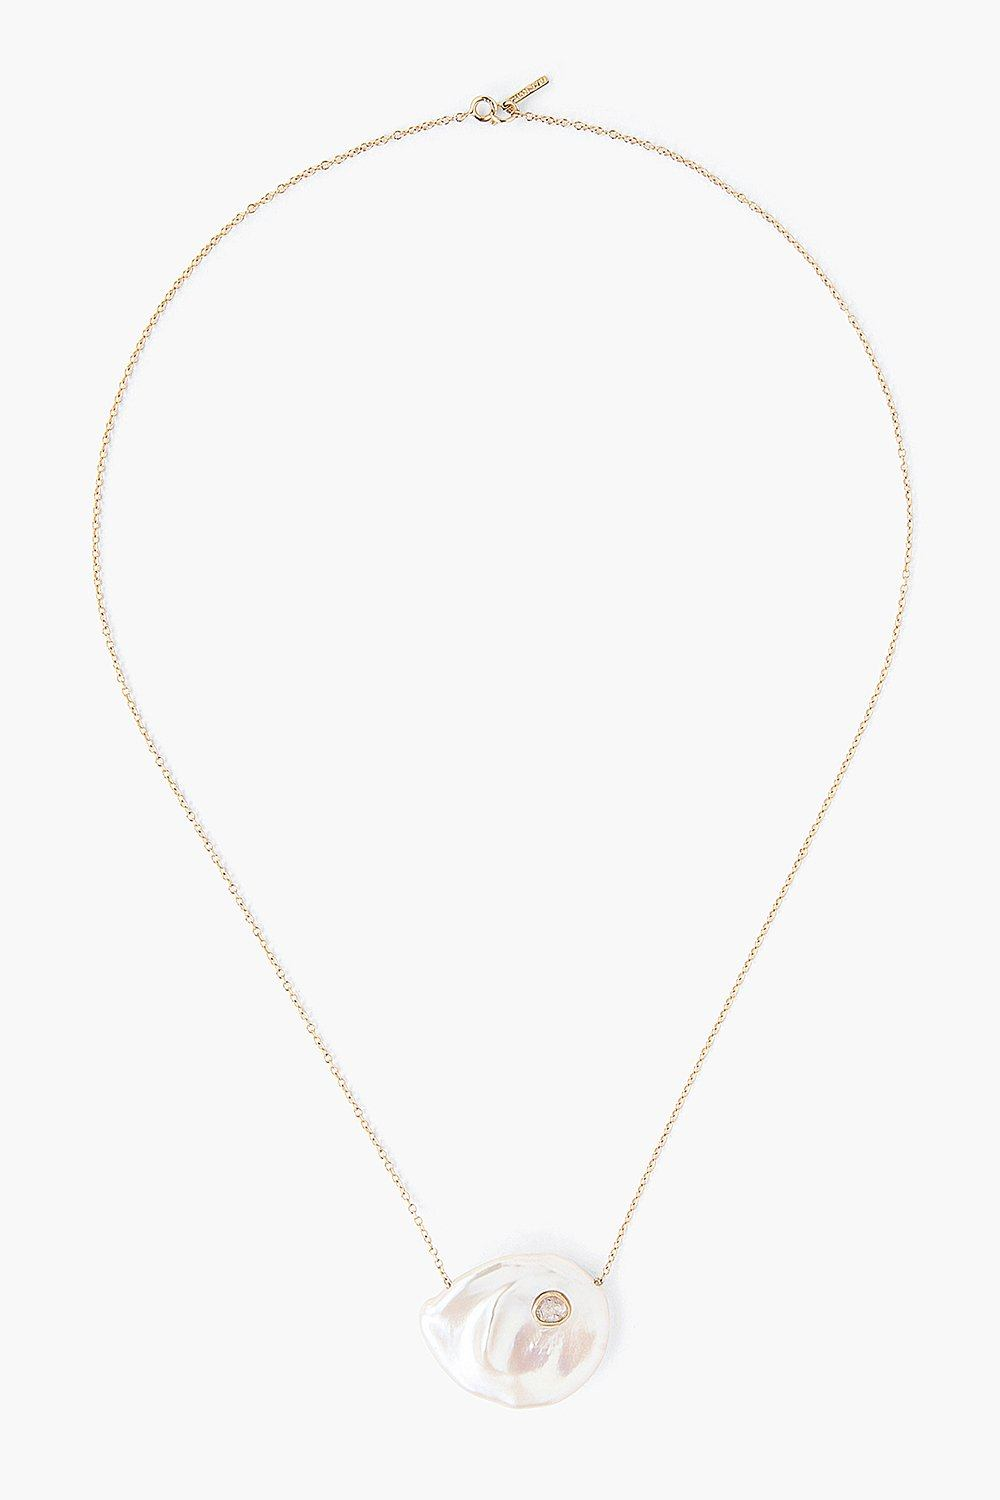 The Oasis Necklace